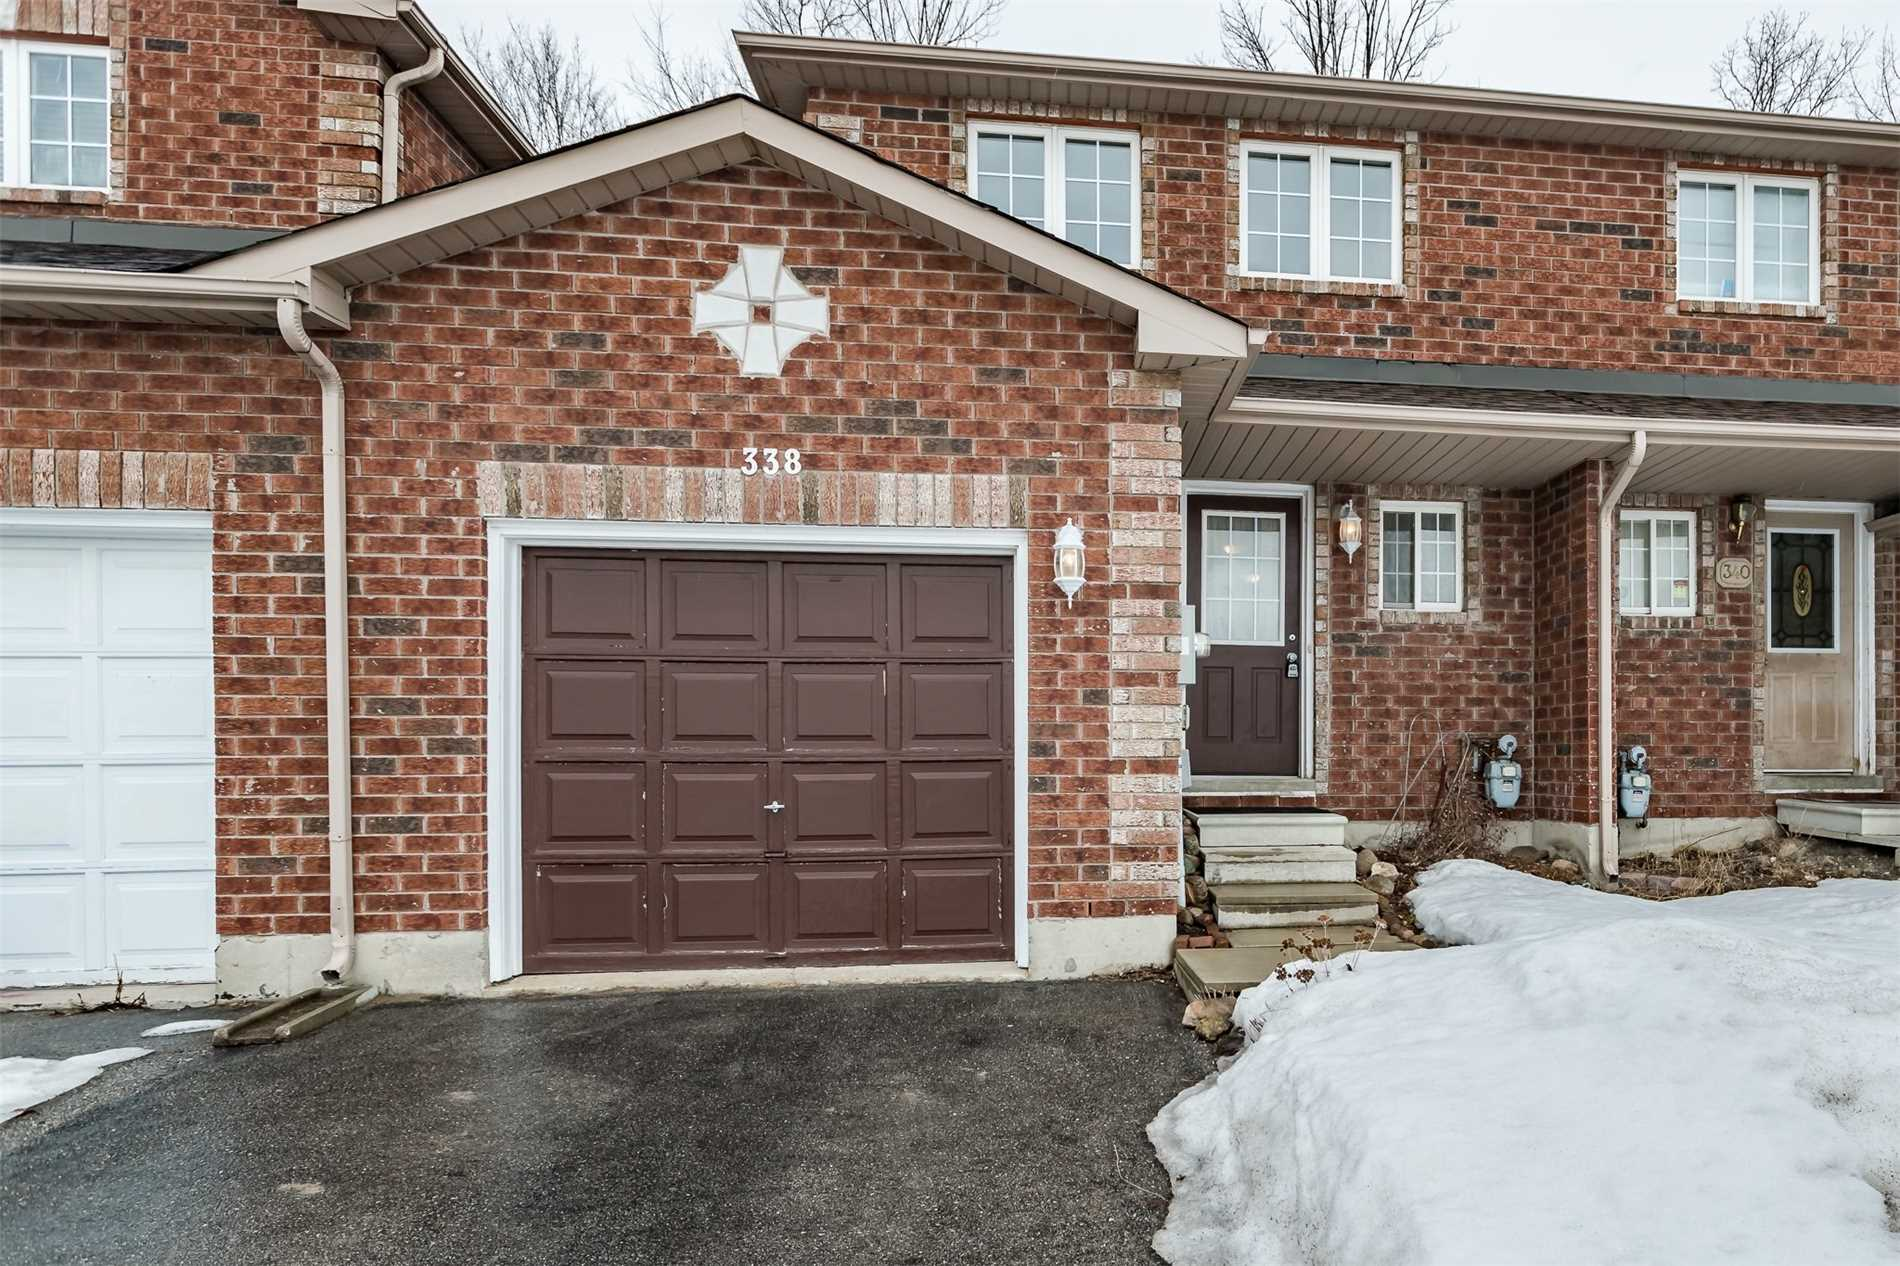 pictures of 338 Dunsmore Lane, Barrie L4M 7B2